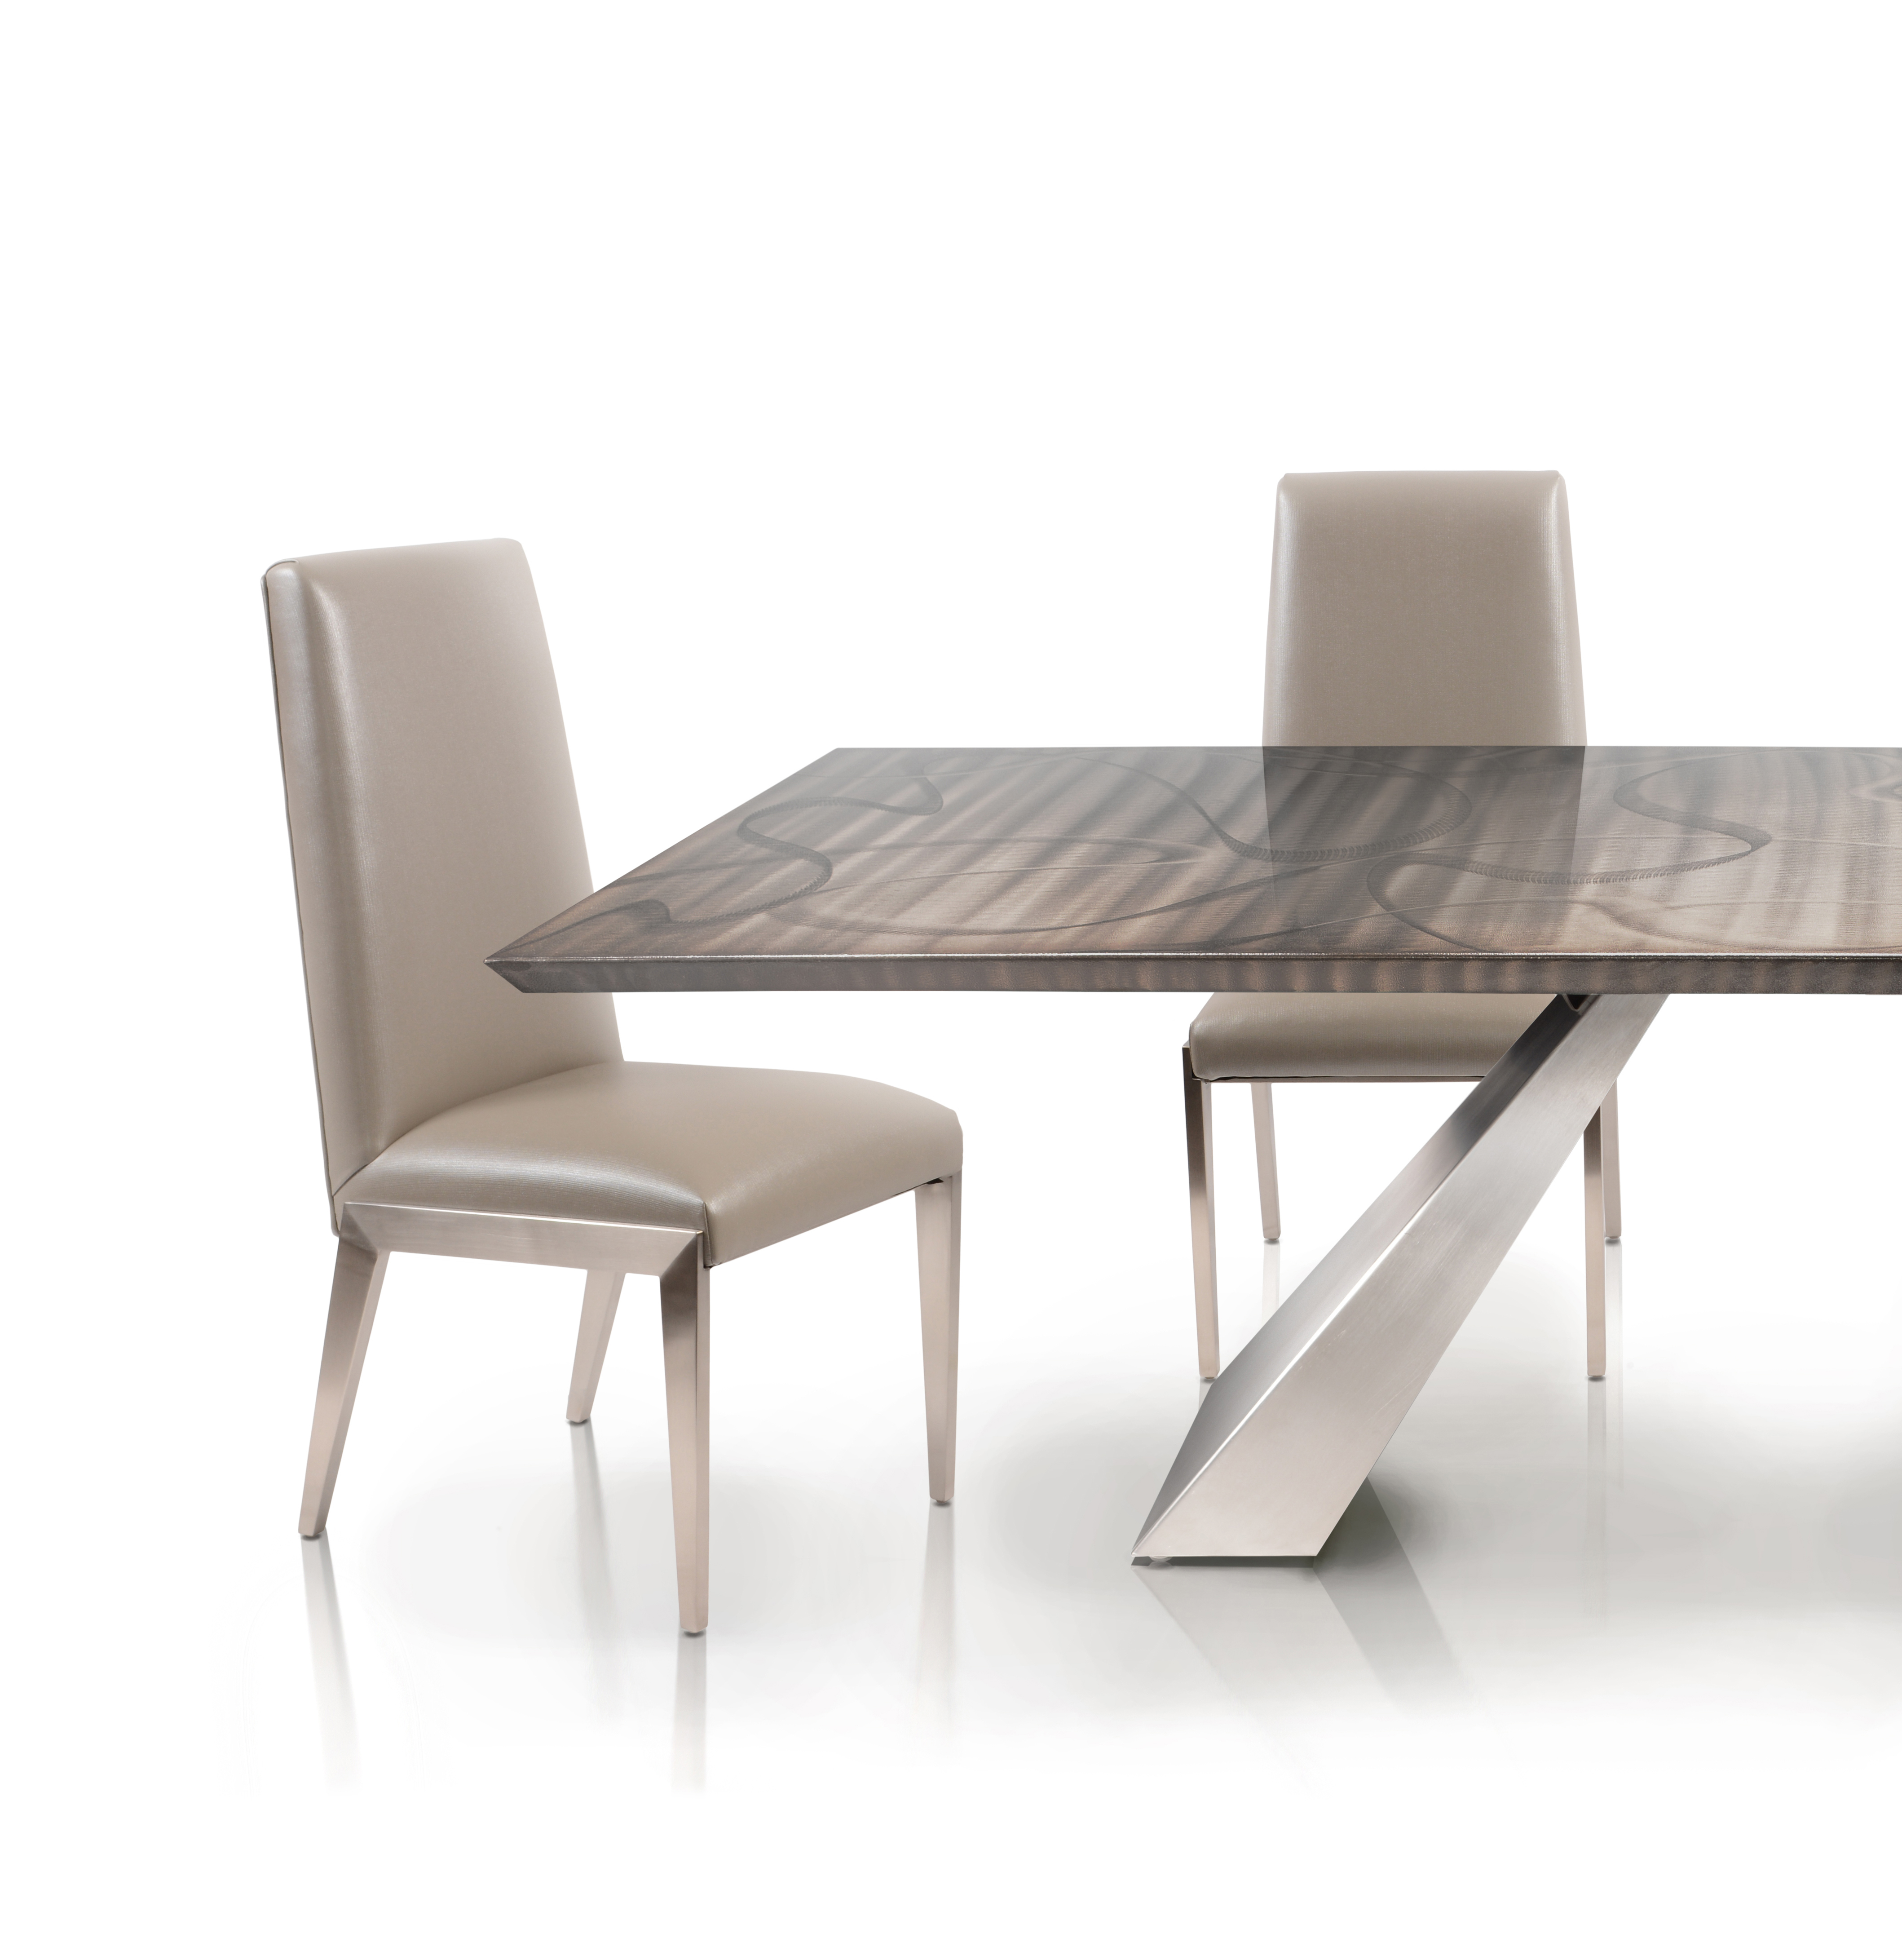 Contemporary Furnishings: Oios Modern Furniture Gallery